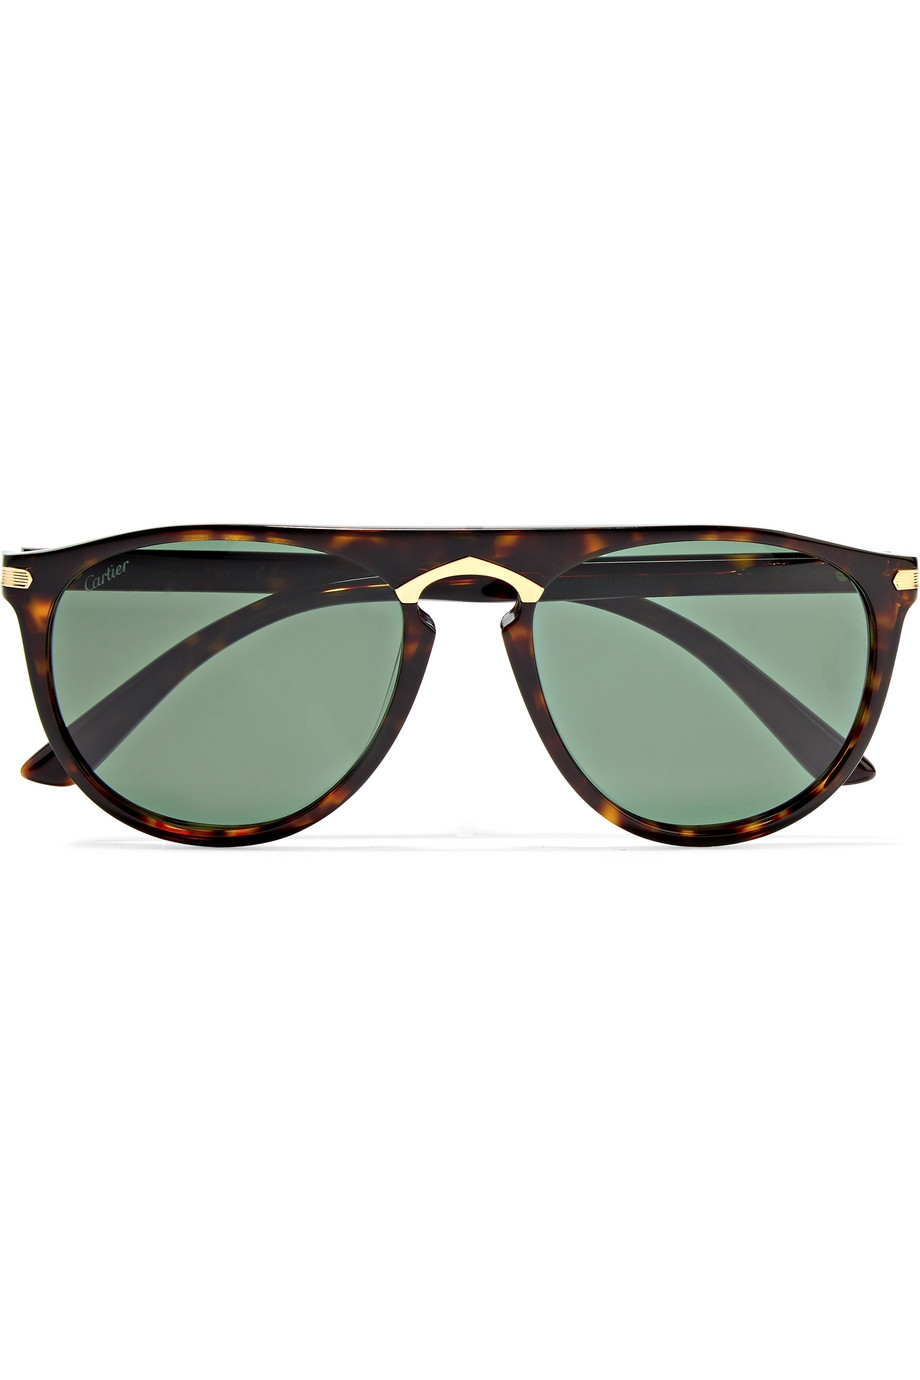 8d0055b85eee Dior Eyewear Dior Club 3 Sunglasses Farfetch